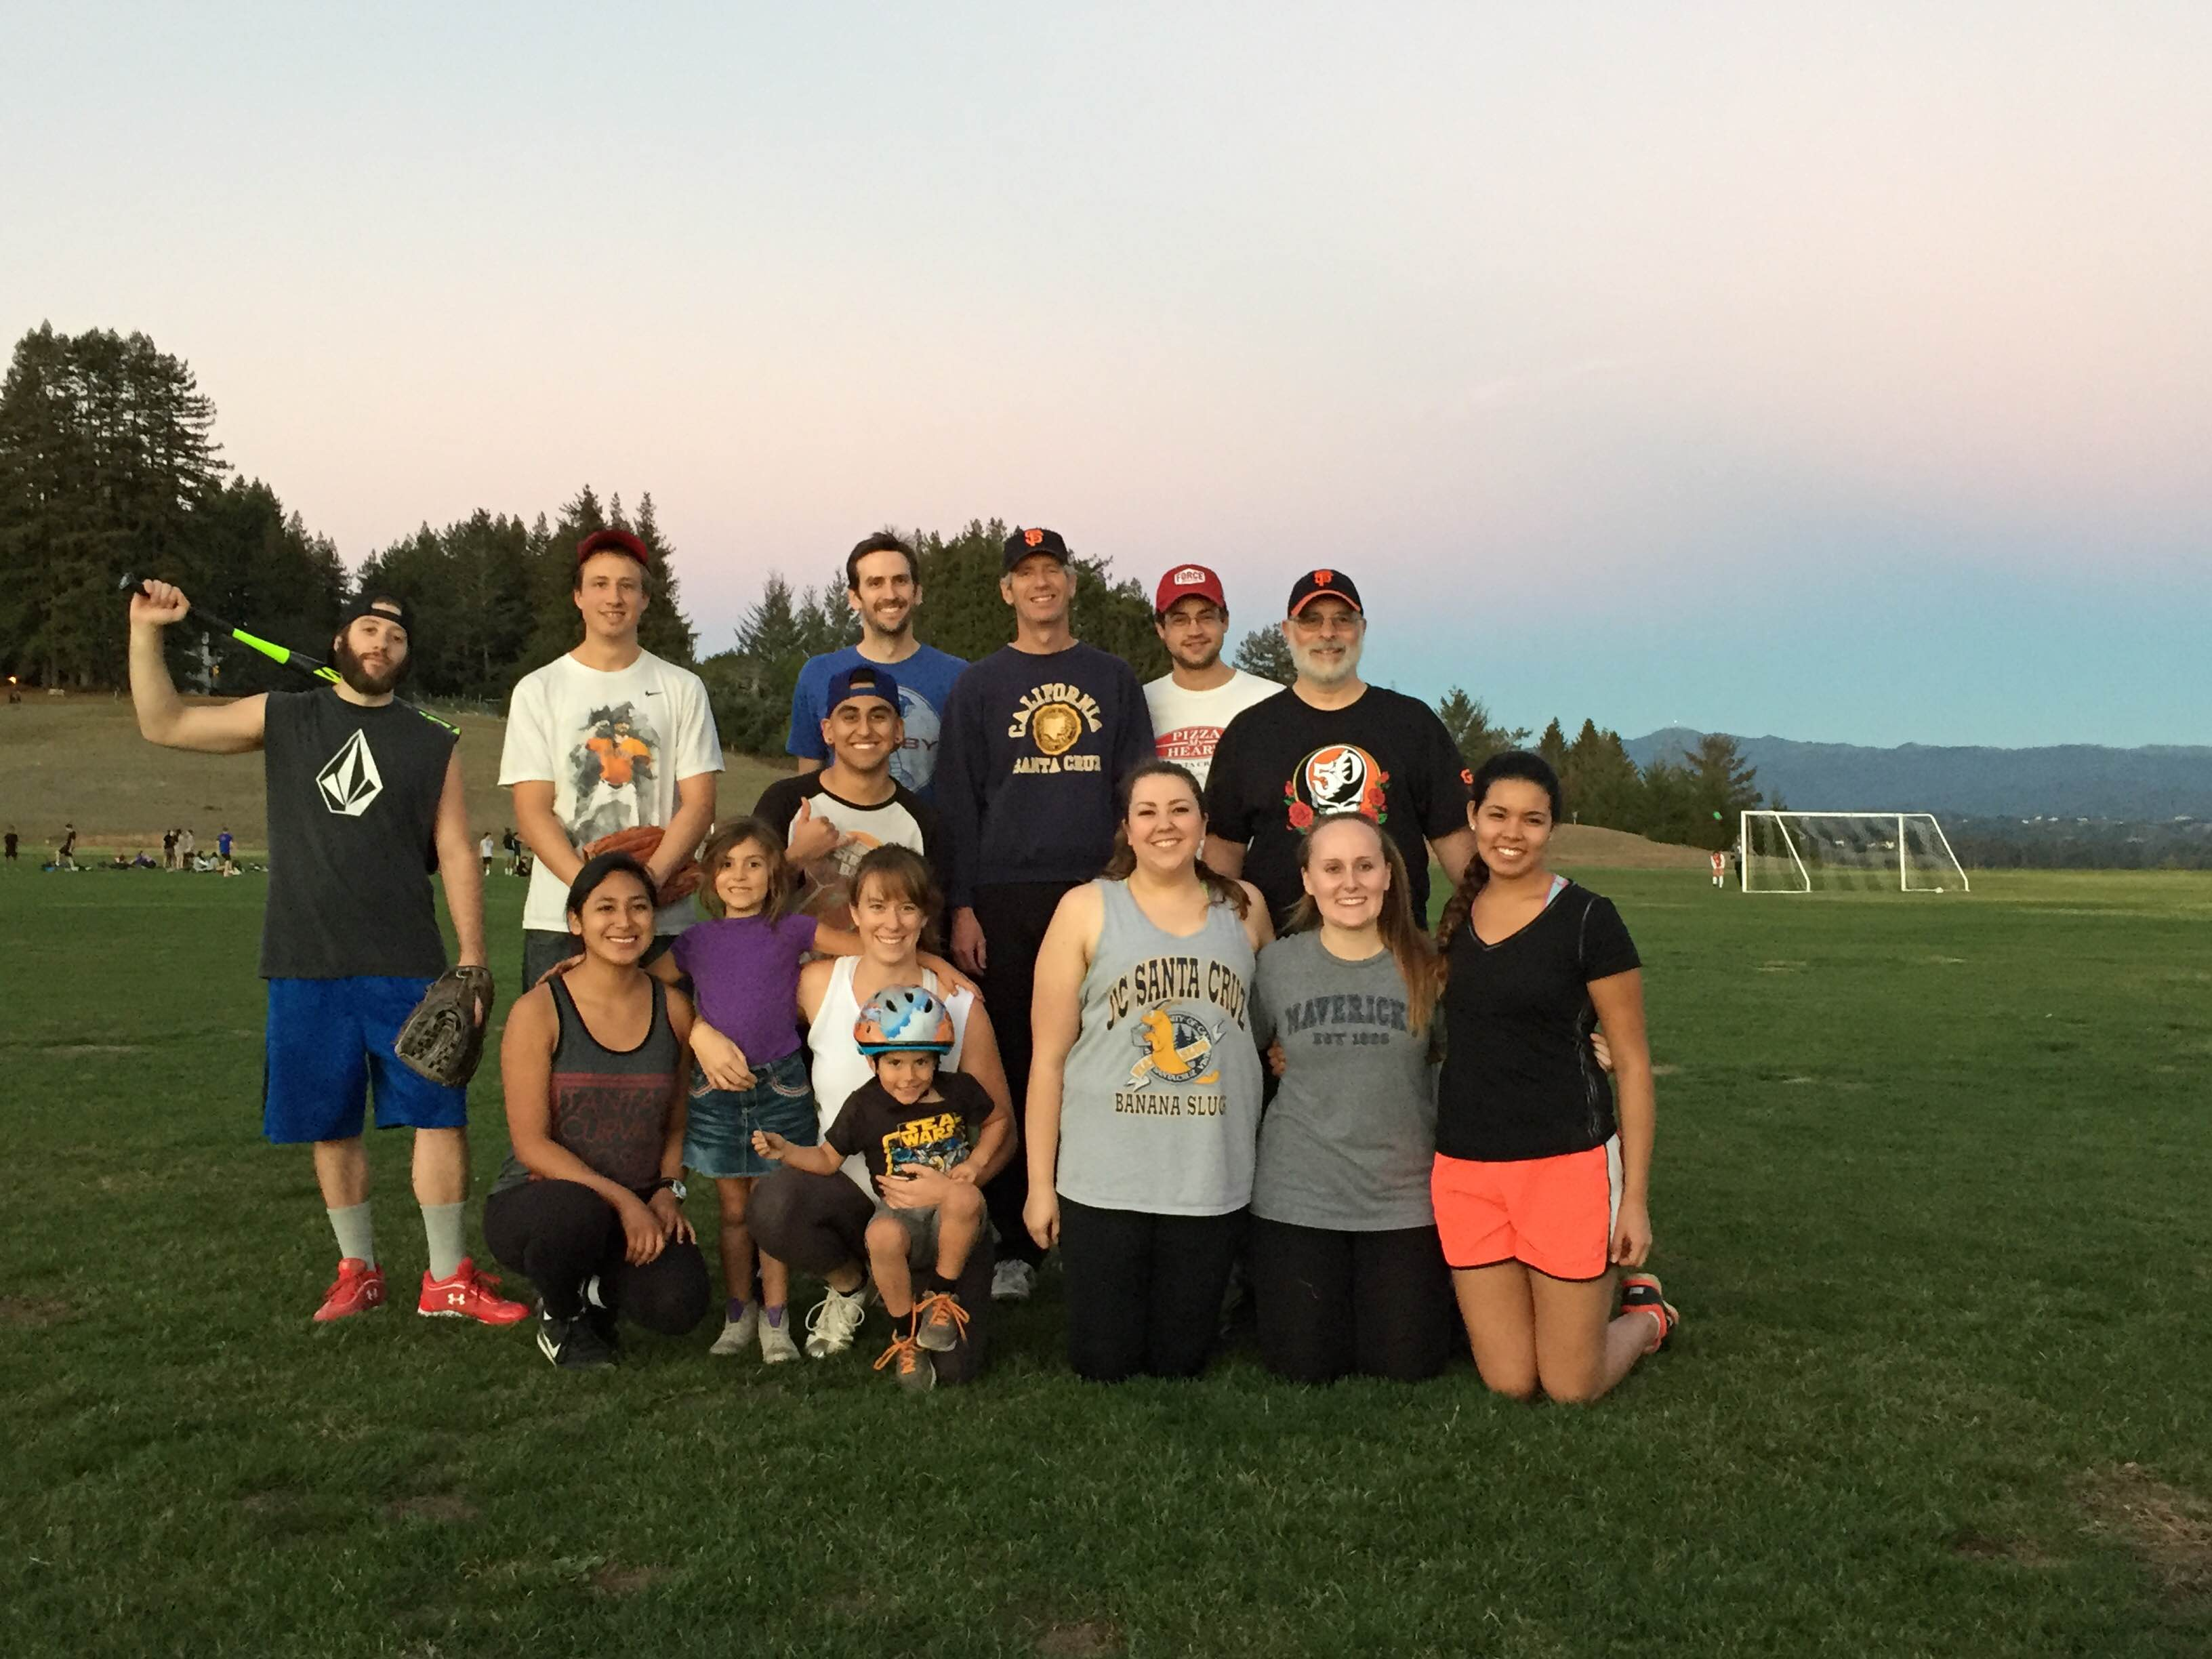 Fall 2015 Coed Softball Team